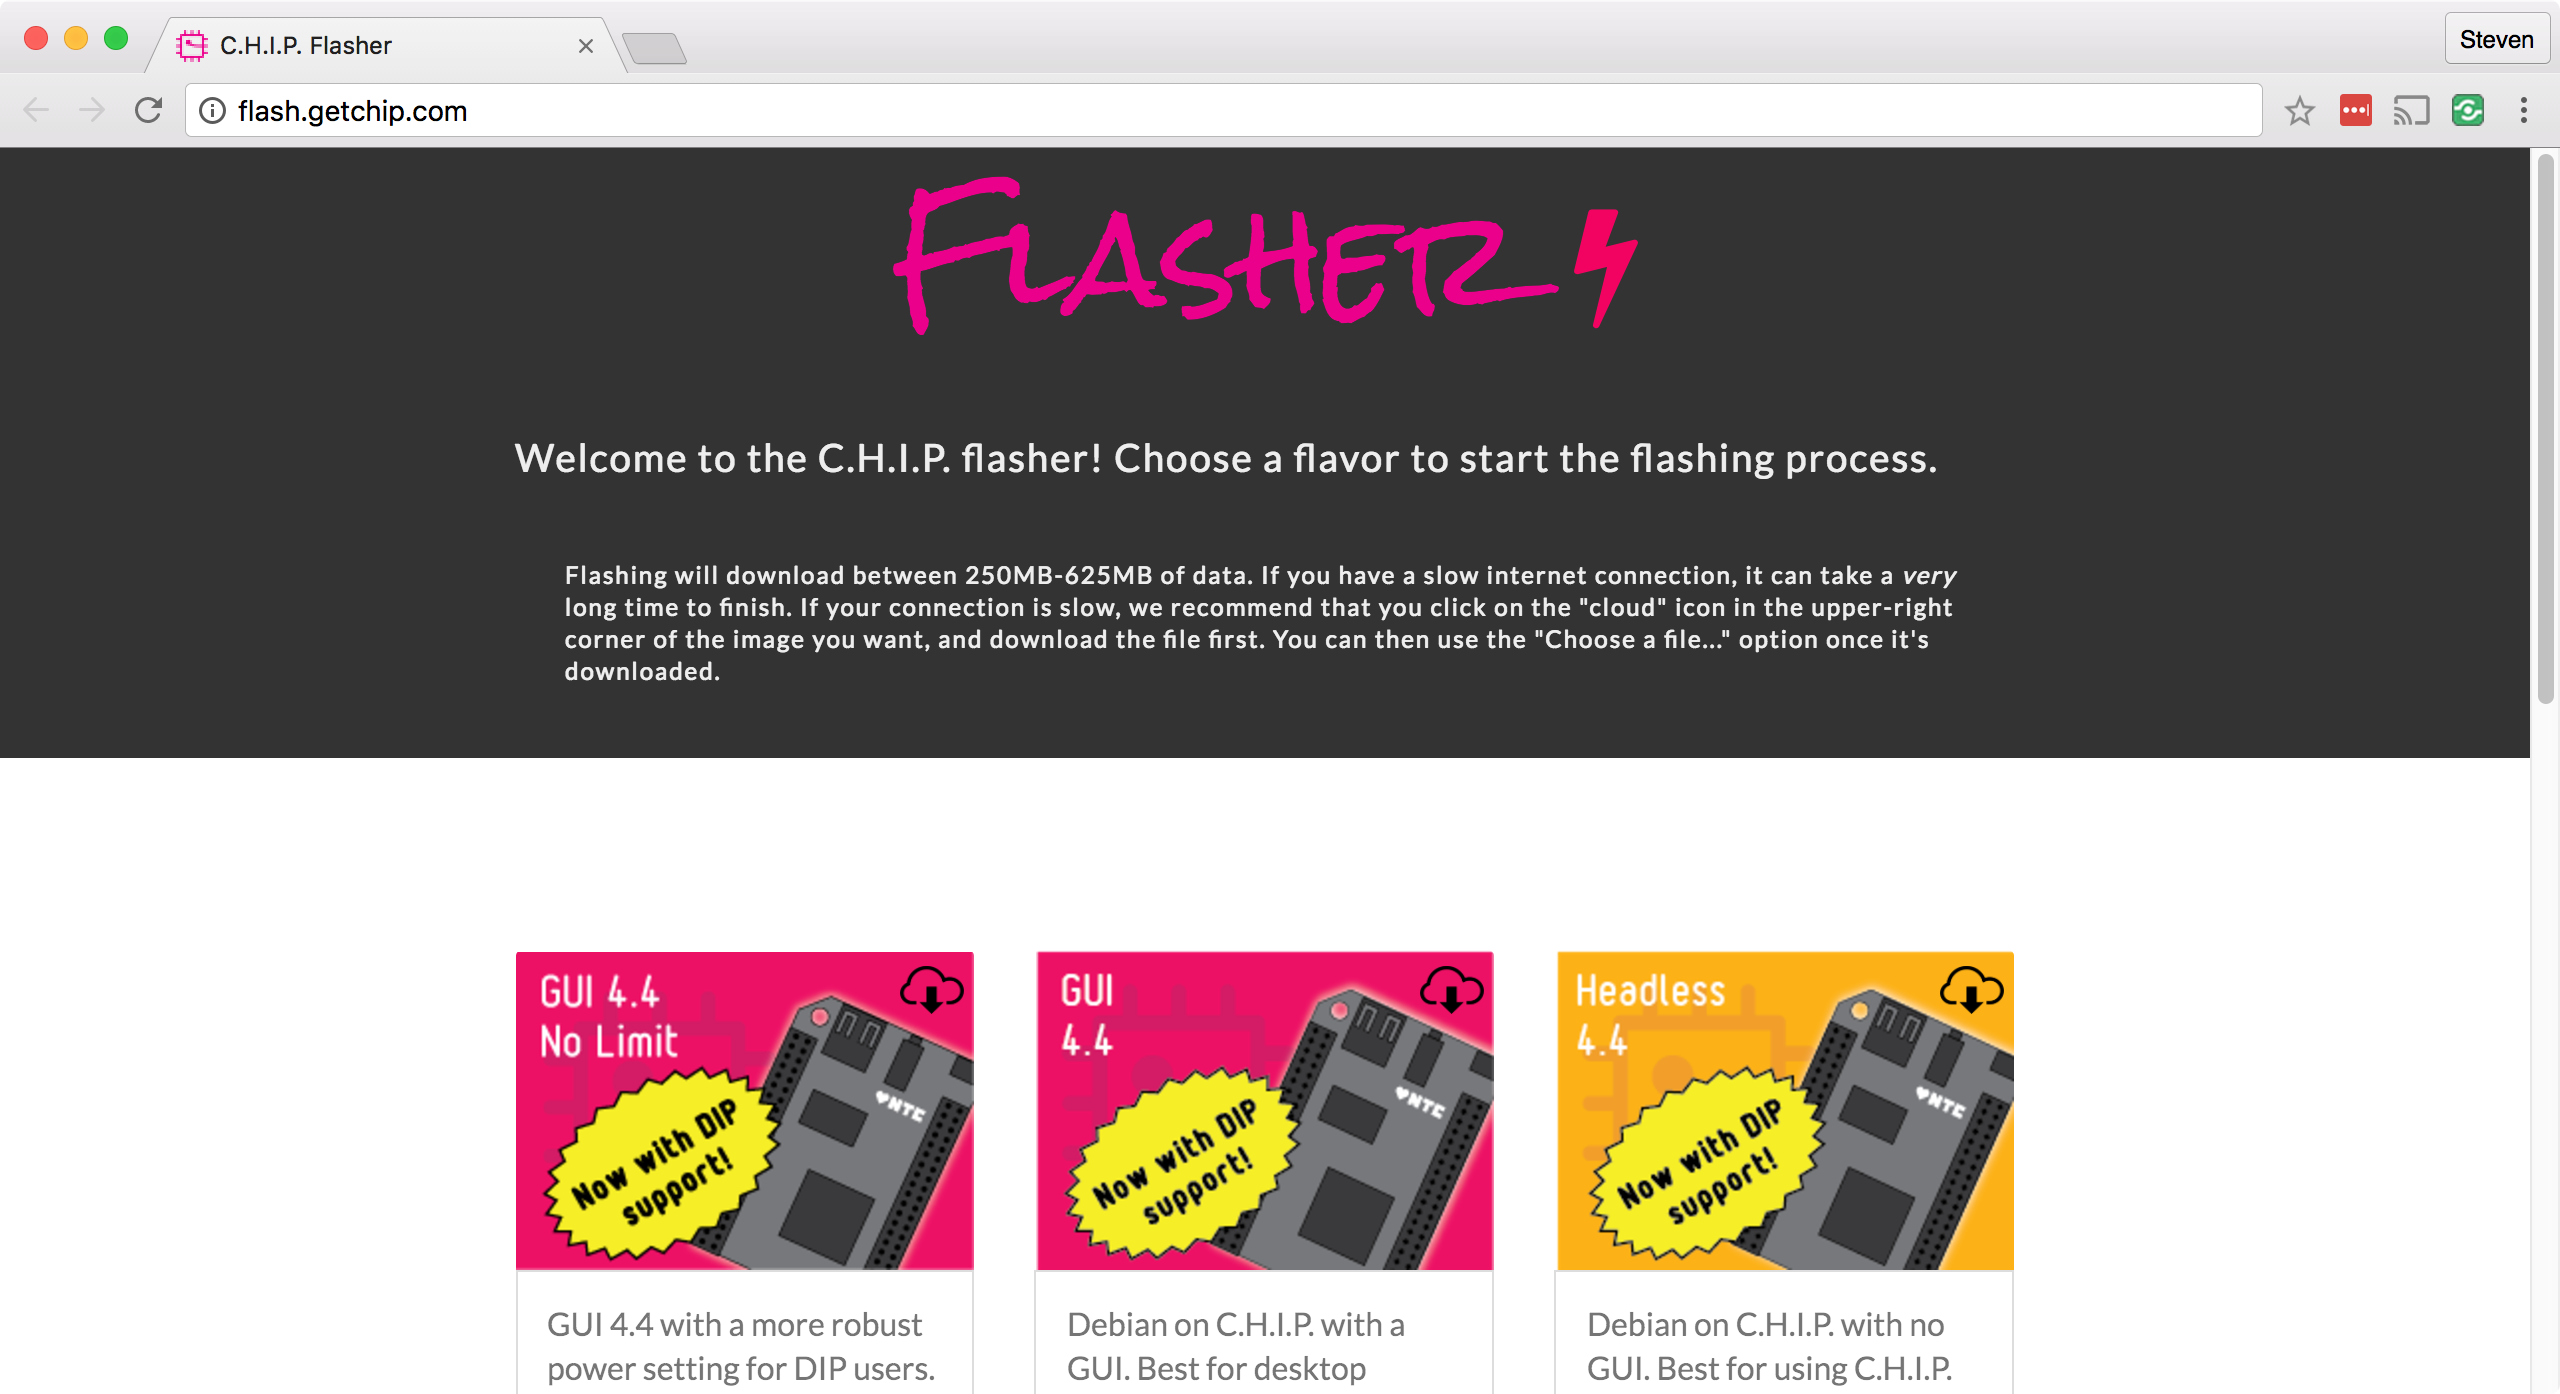 C.H.I.P. Flasher Page